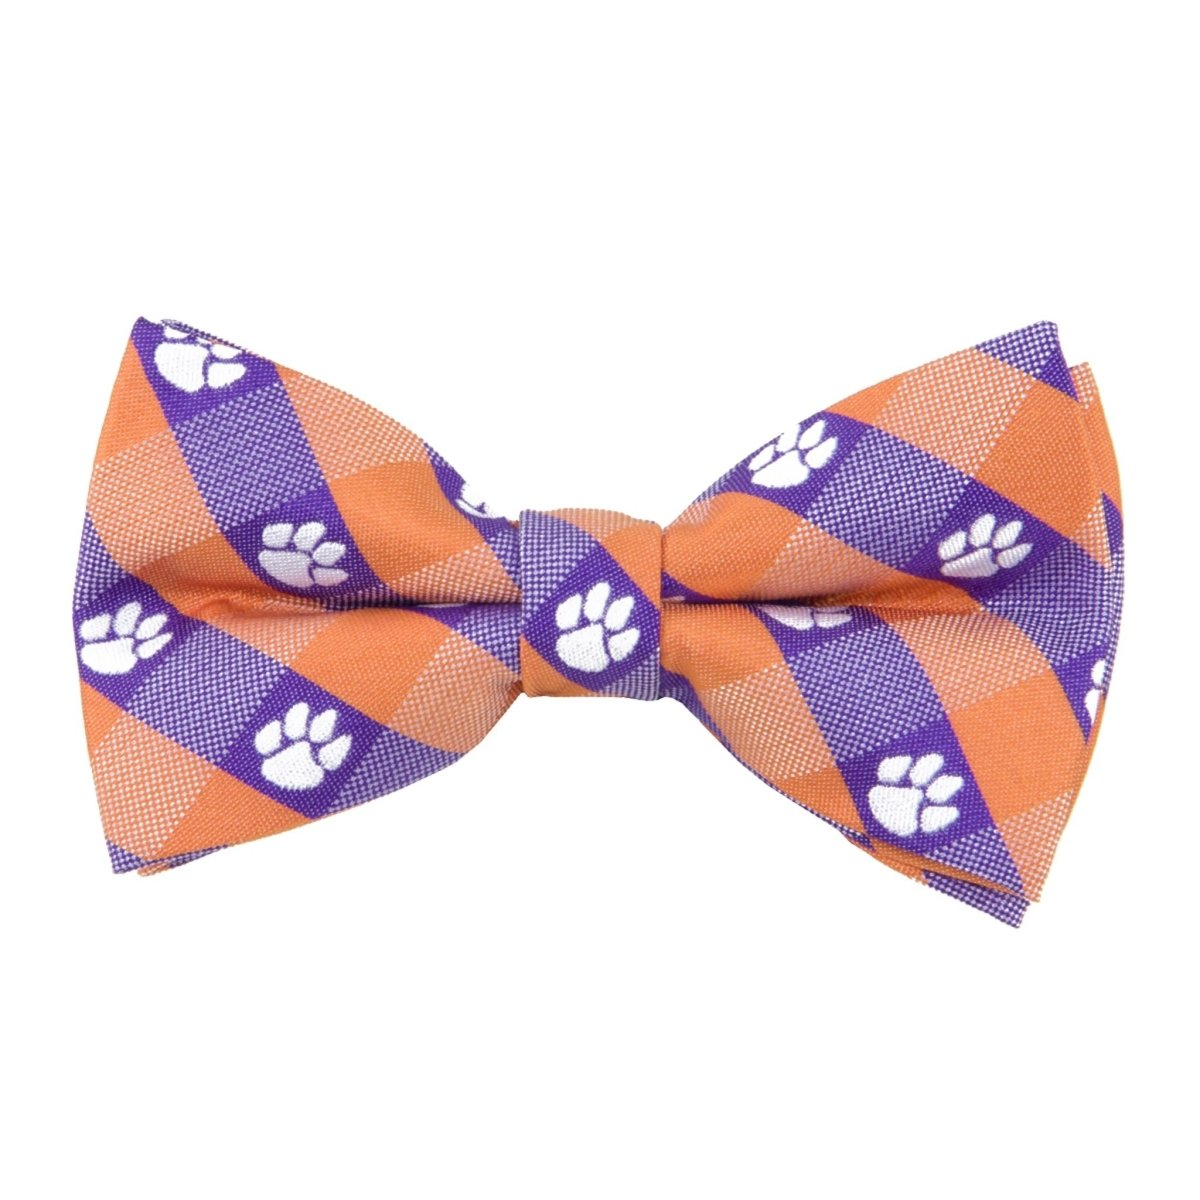 Woven Pretied Check Bow Tie With White Paws Adjustable 11''-19'' - Mr. Knickerbocker